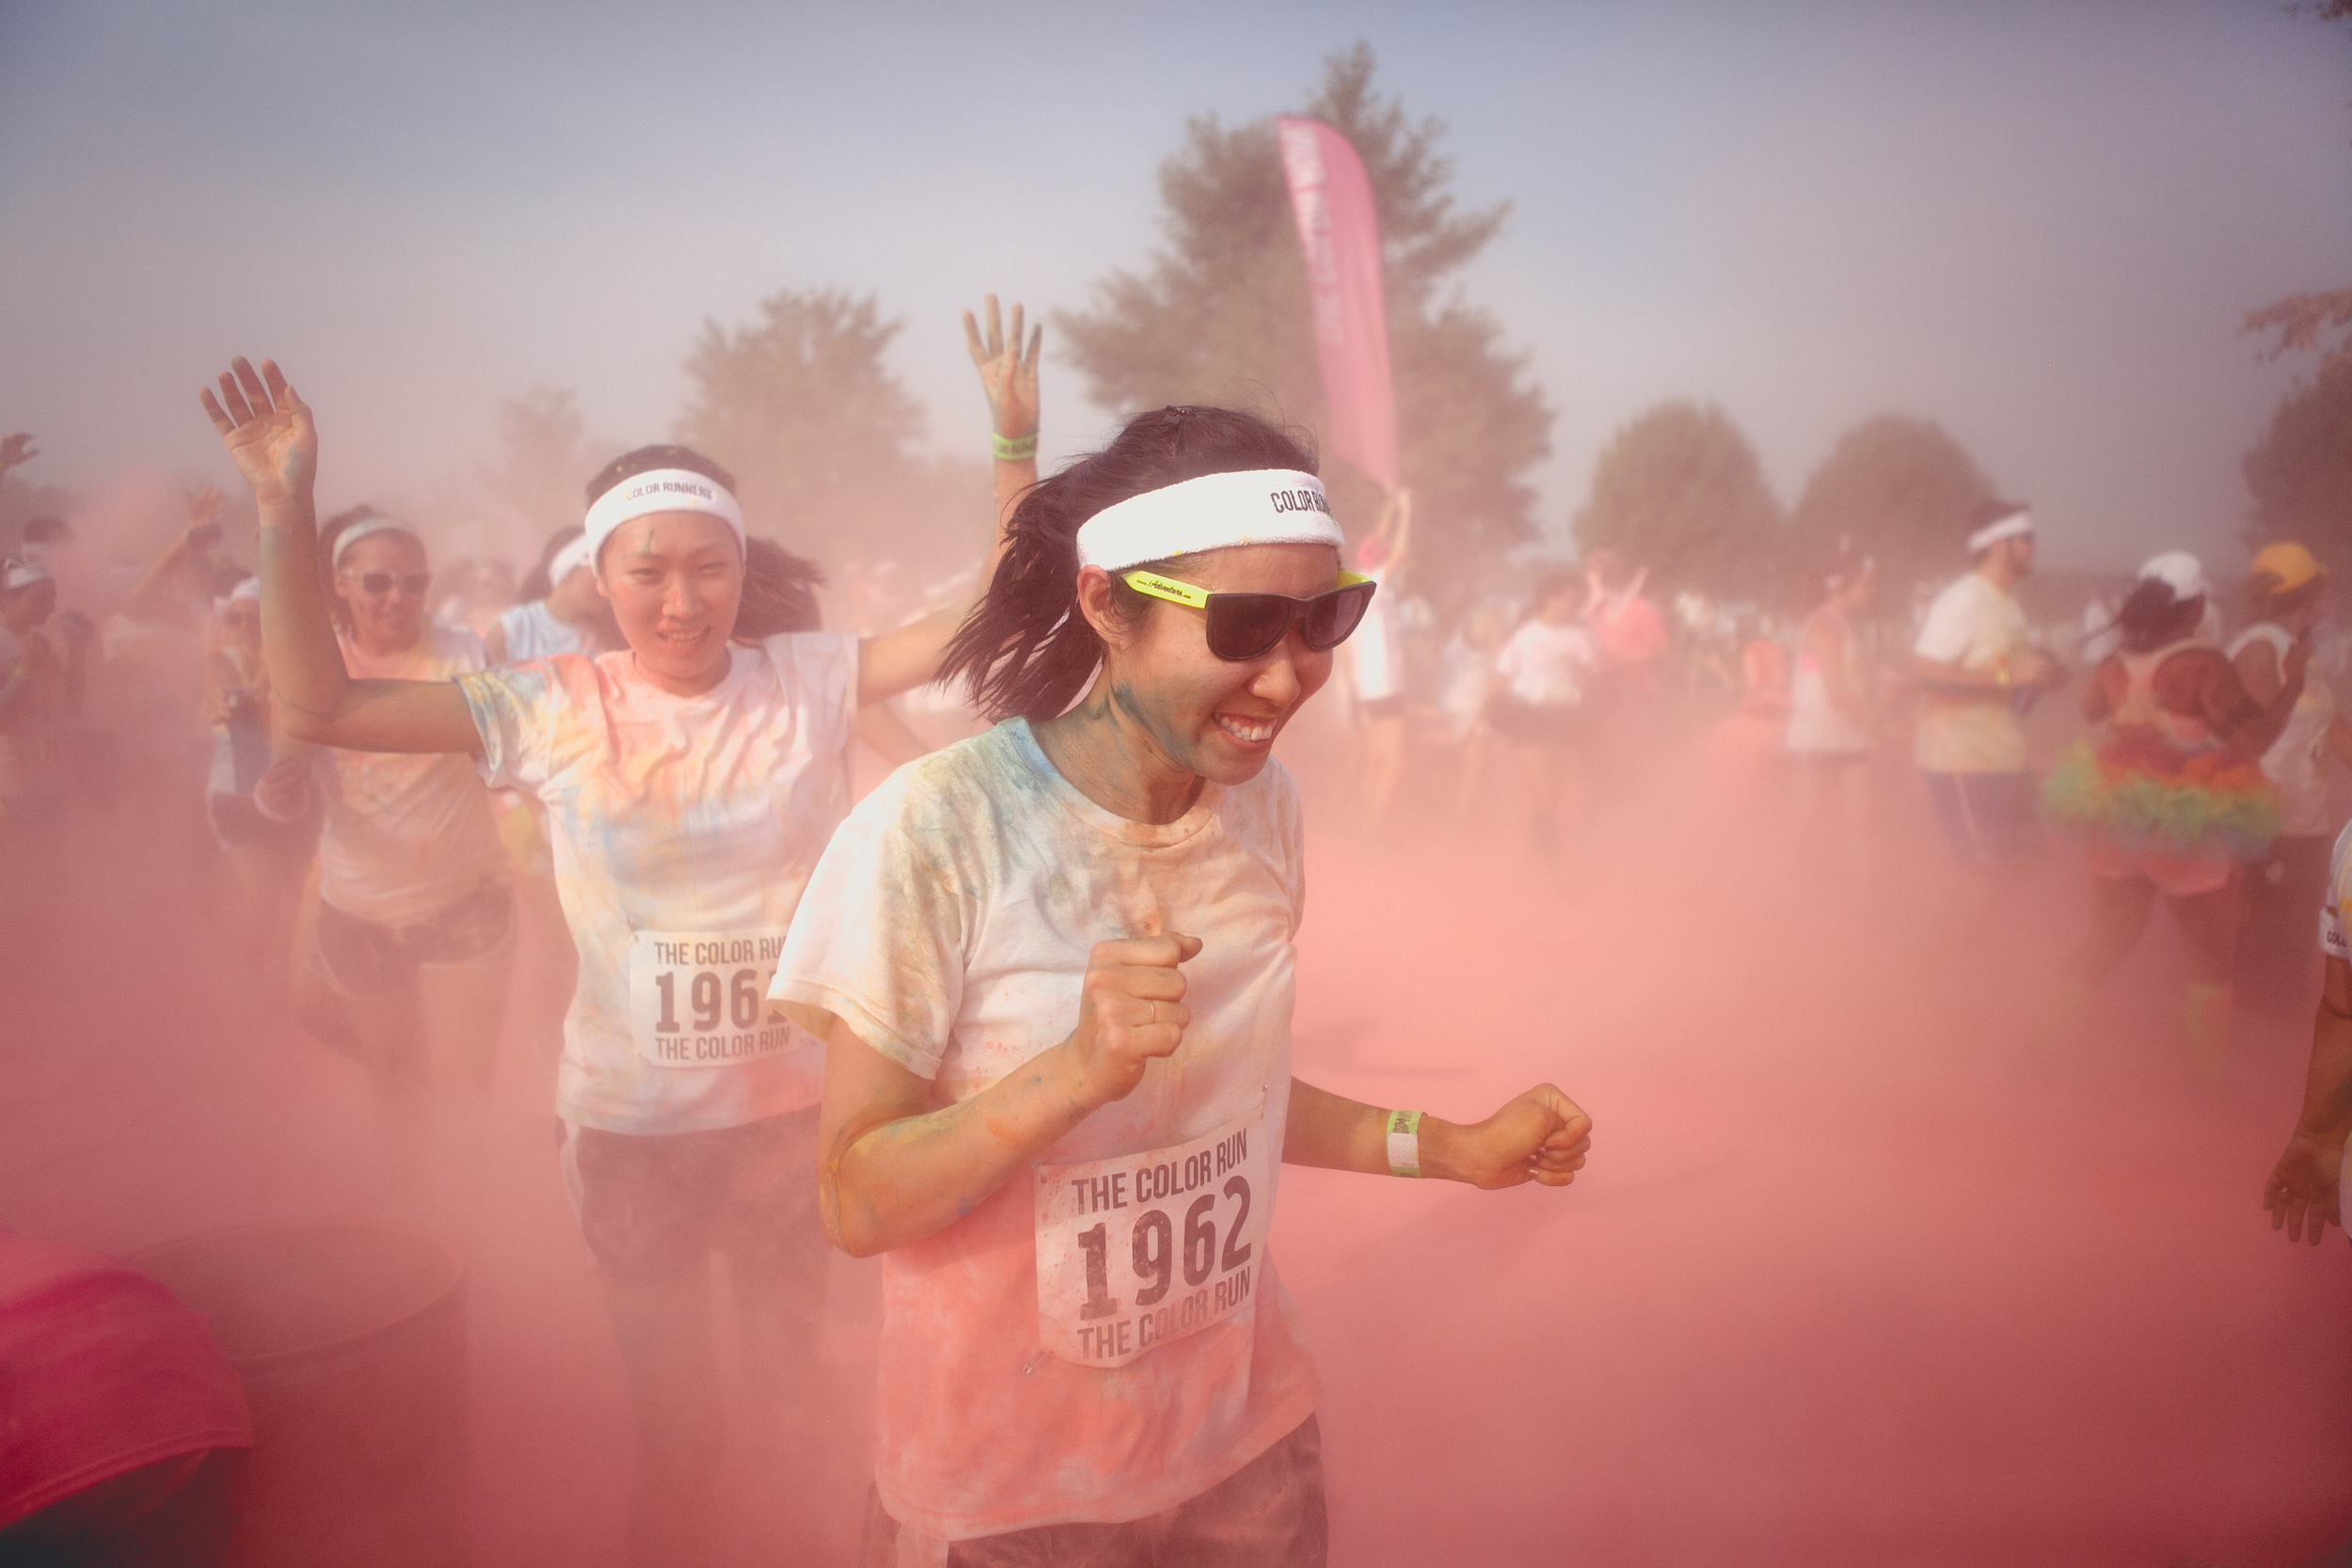 colorrun2012 (48 of 104).jpg